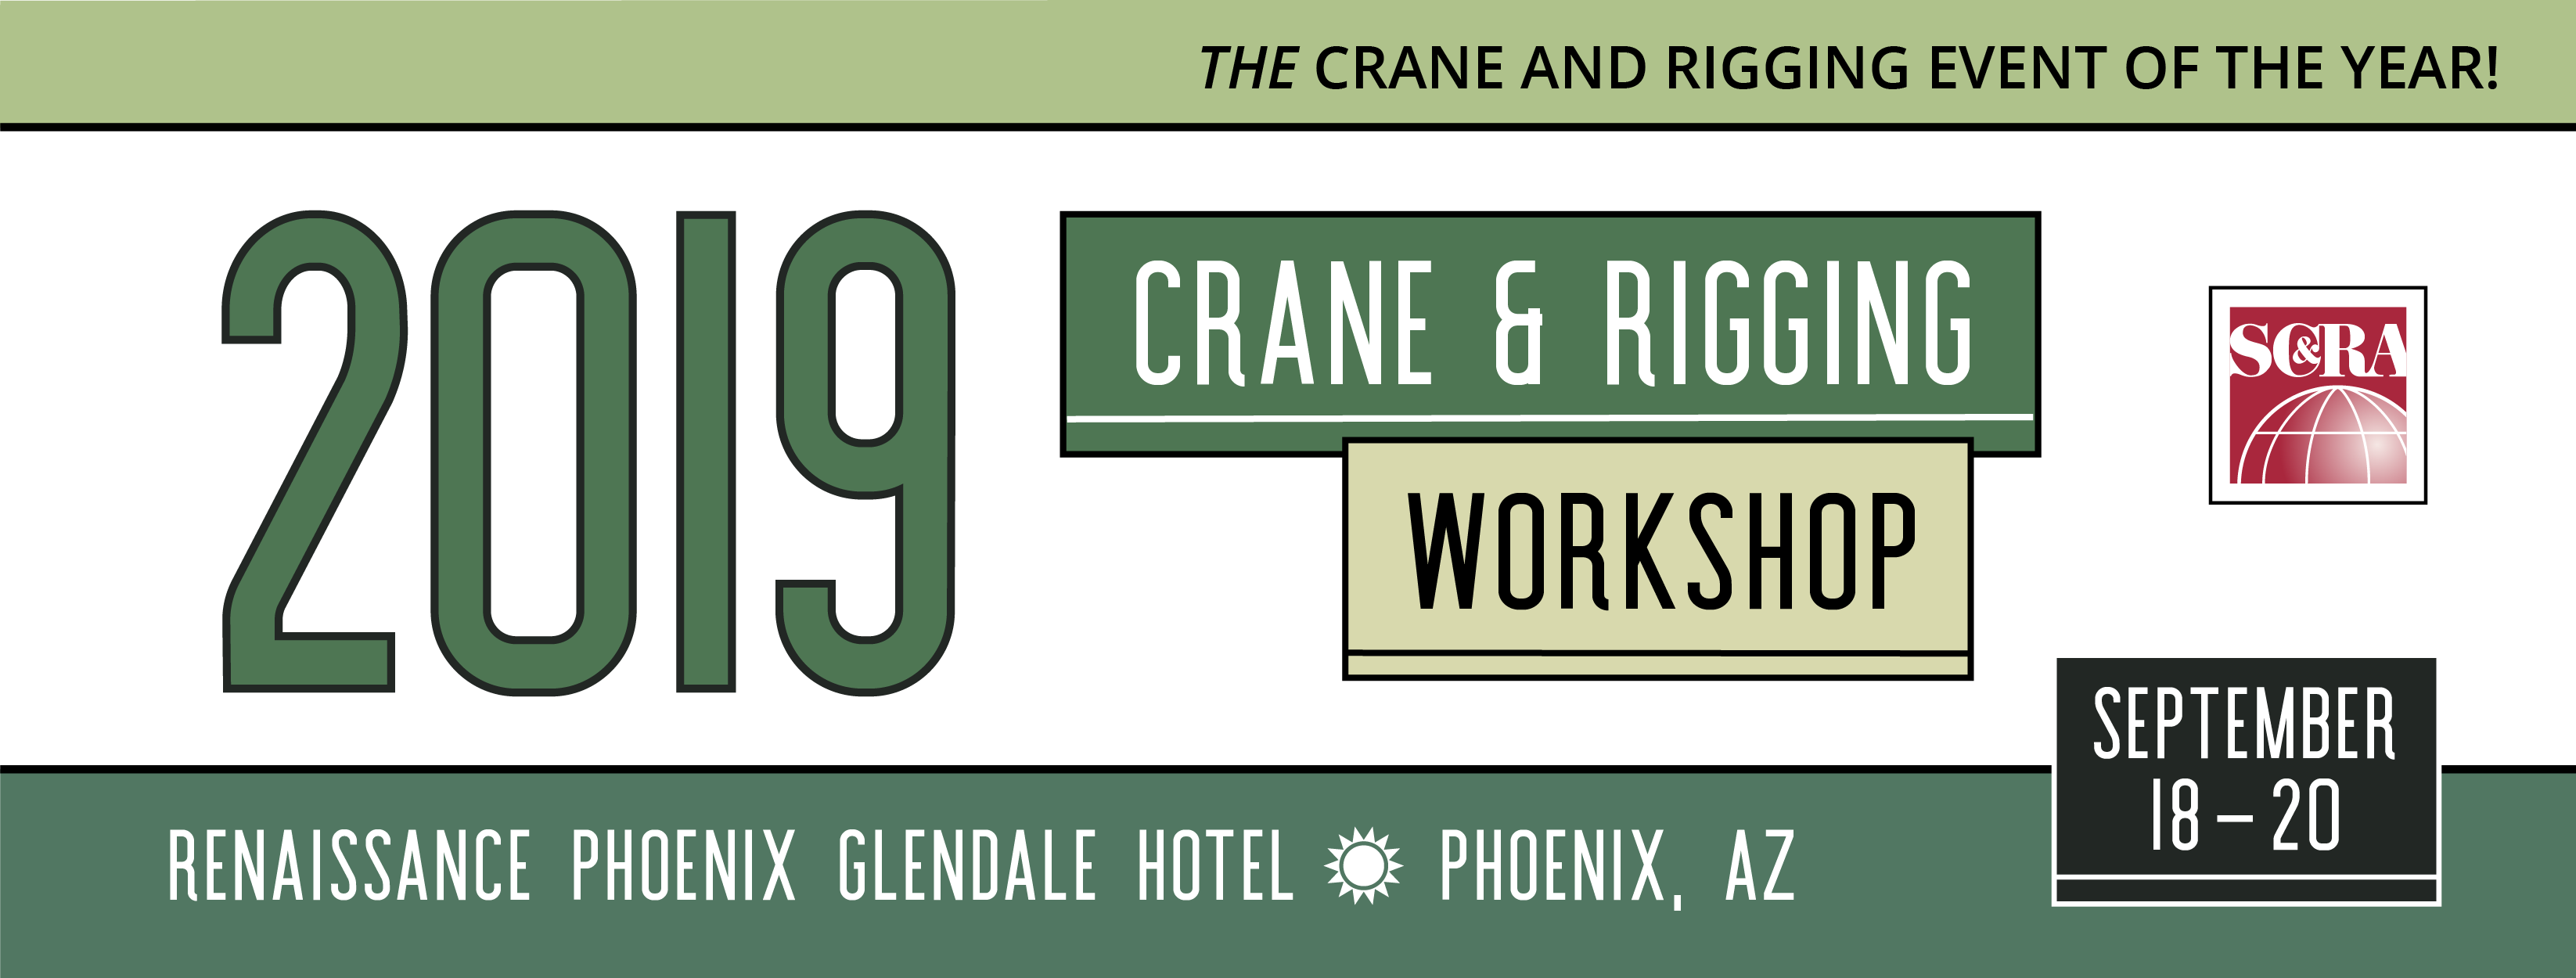 2019 Crane & Rigging Workshop